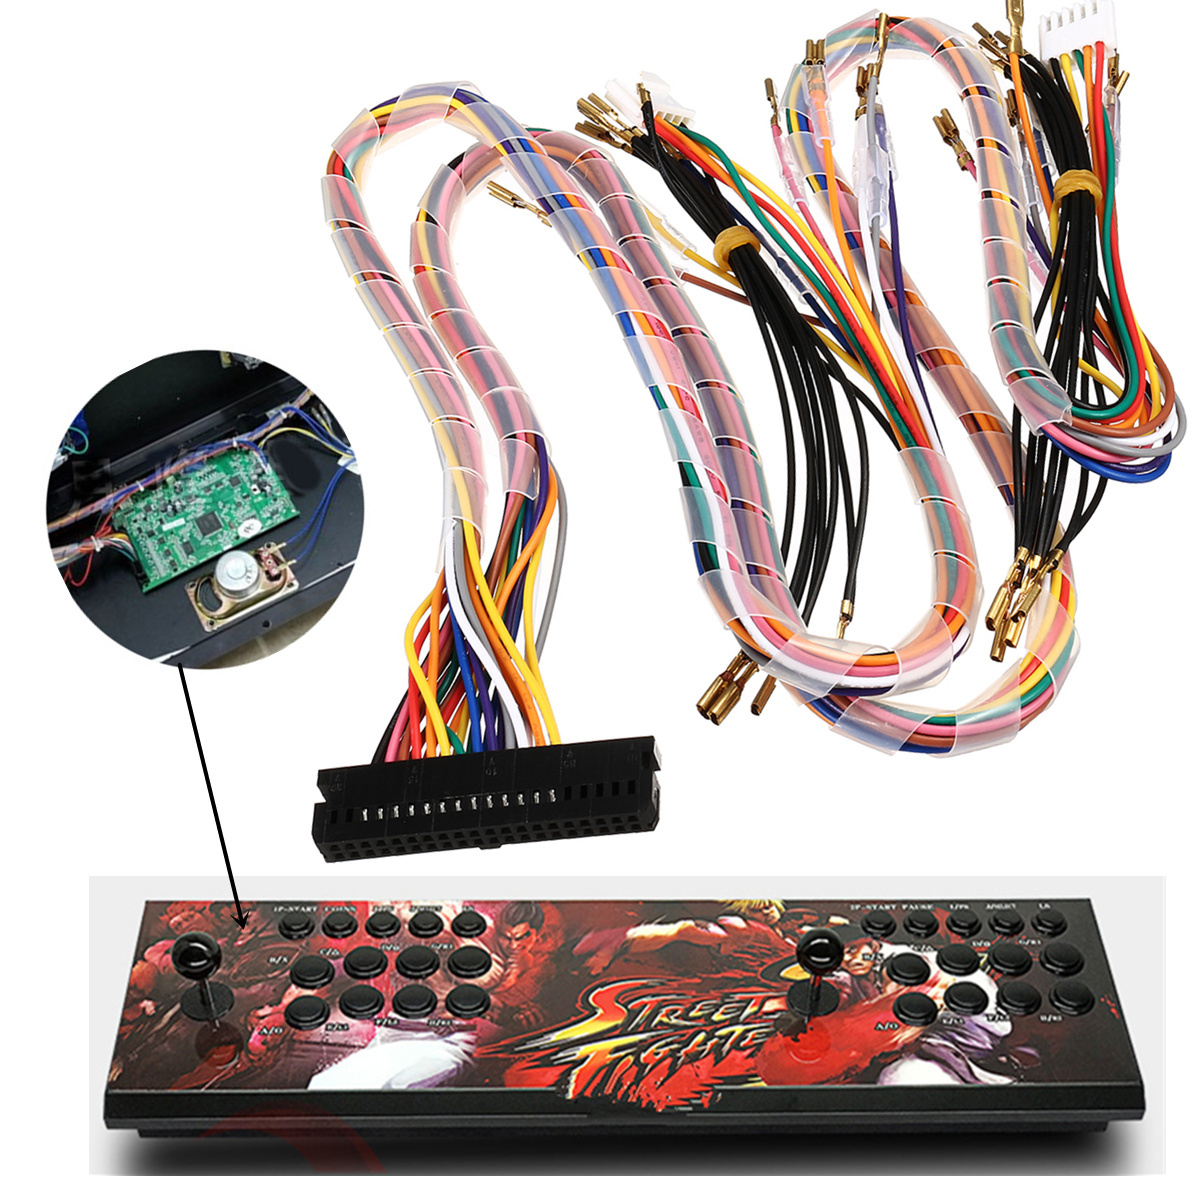 Details about Wiring Harness Cable Replacement Parts Assemble For Arcade  Jamma Board